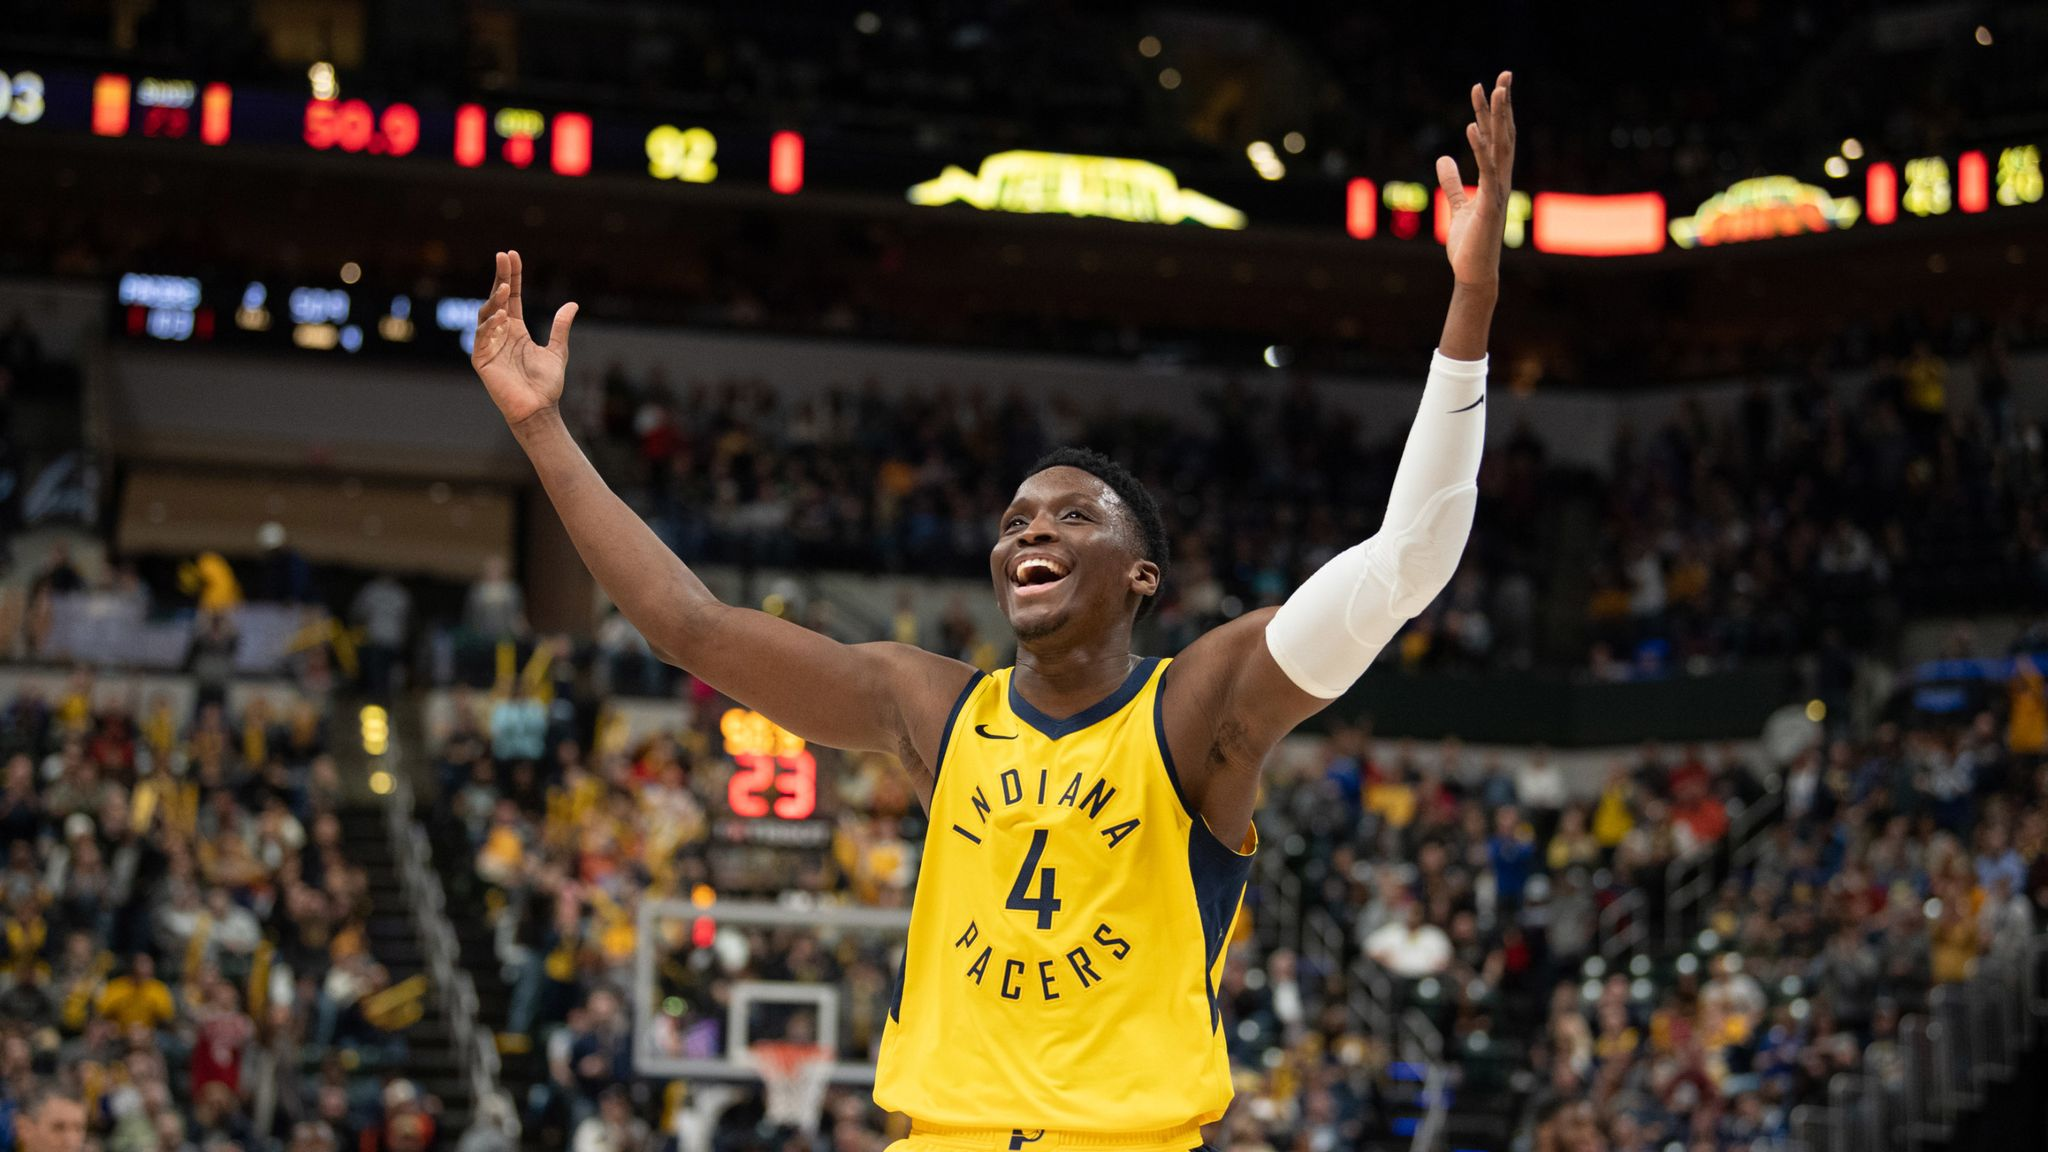 Indiana Pacers poised to make noise again with improved roster